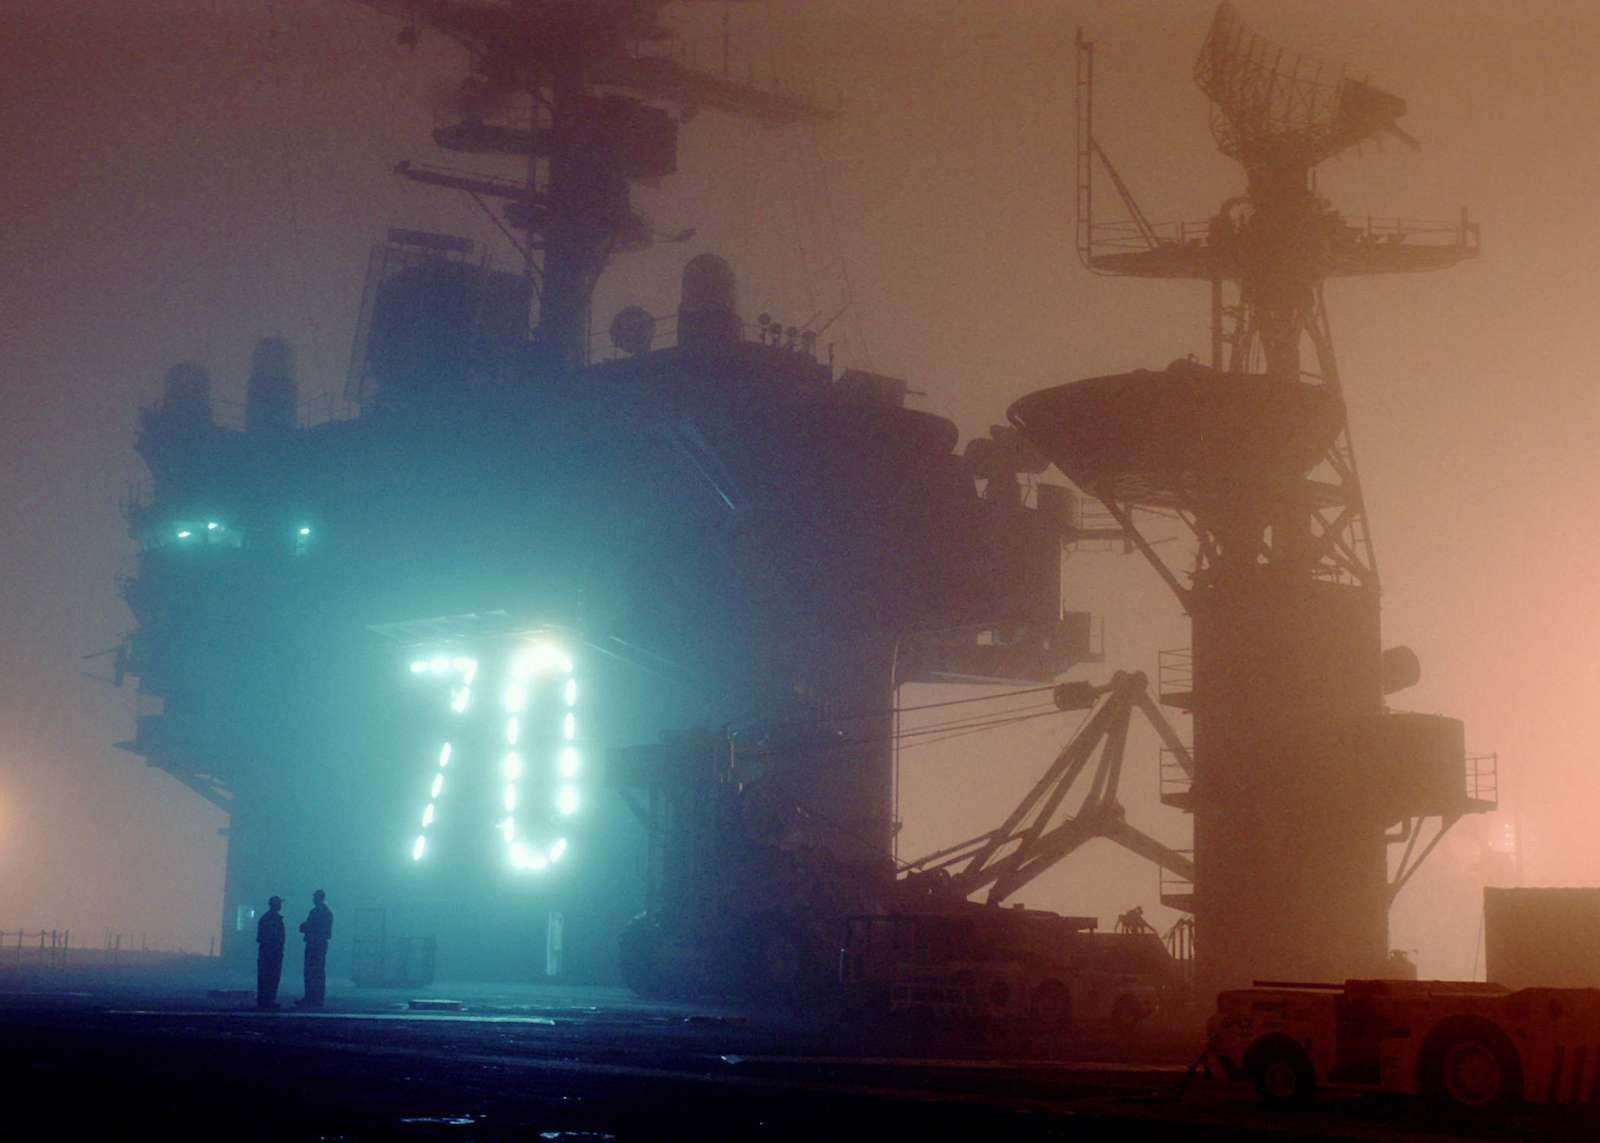 Early morning fog sets across the flight deck of the aircraft carrier USS Carl Vinson